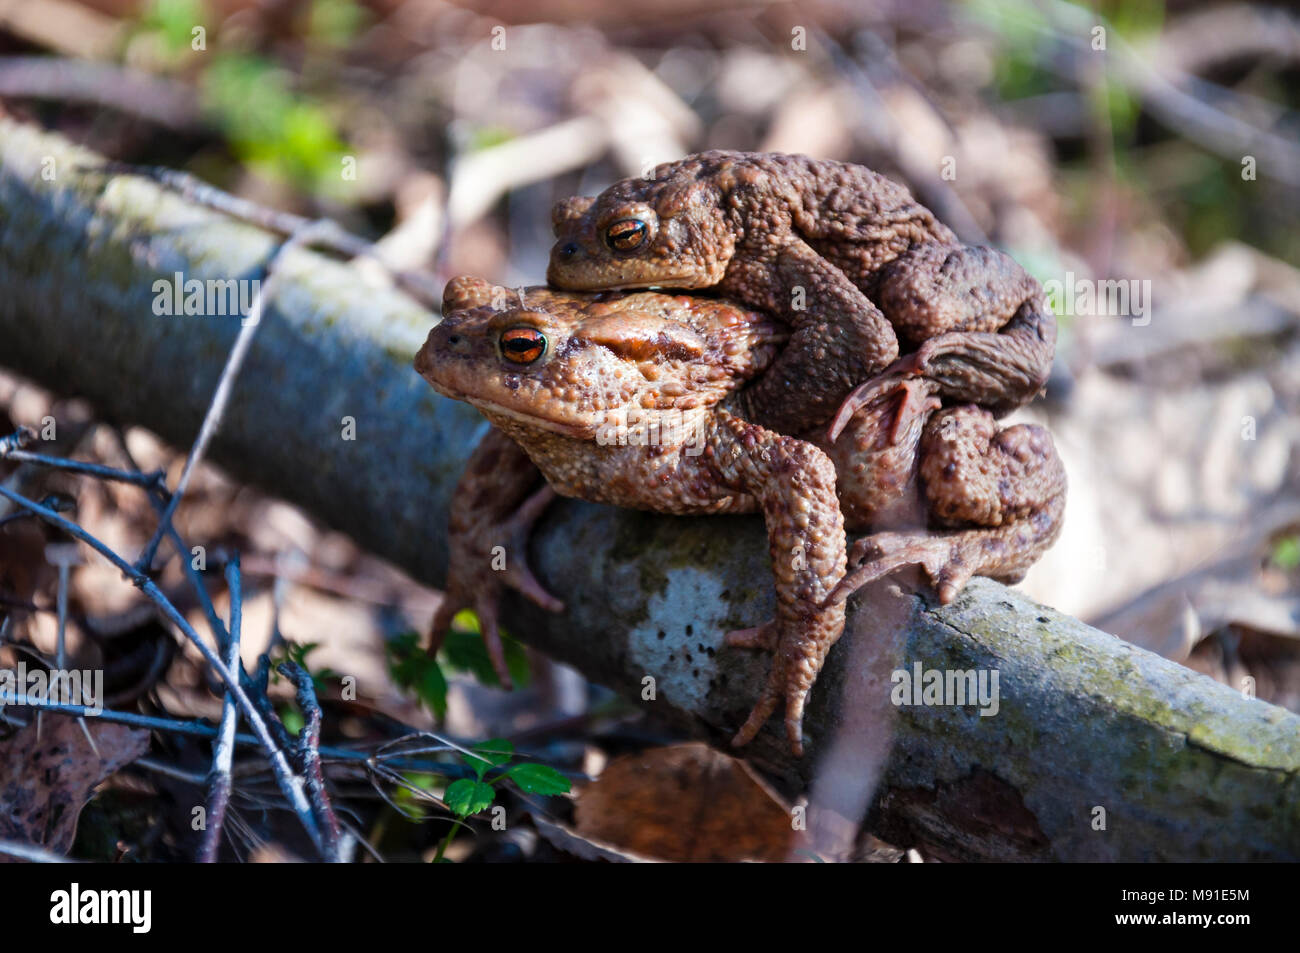 Common toads Bufo bufo pairing - Stock Image